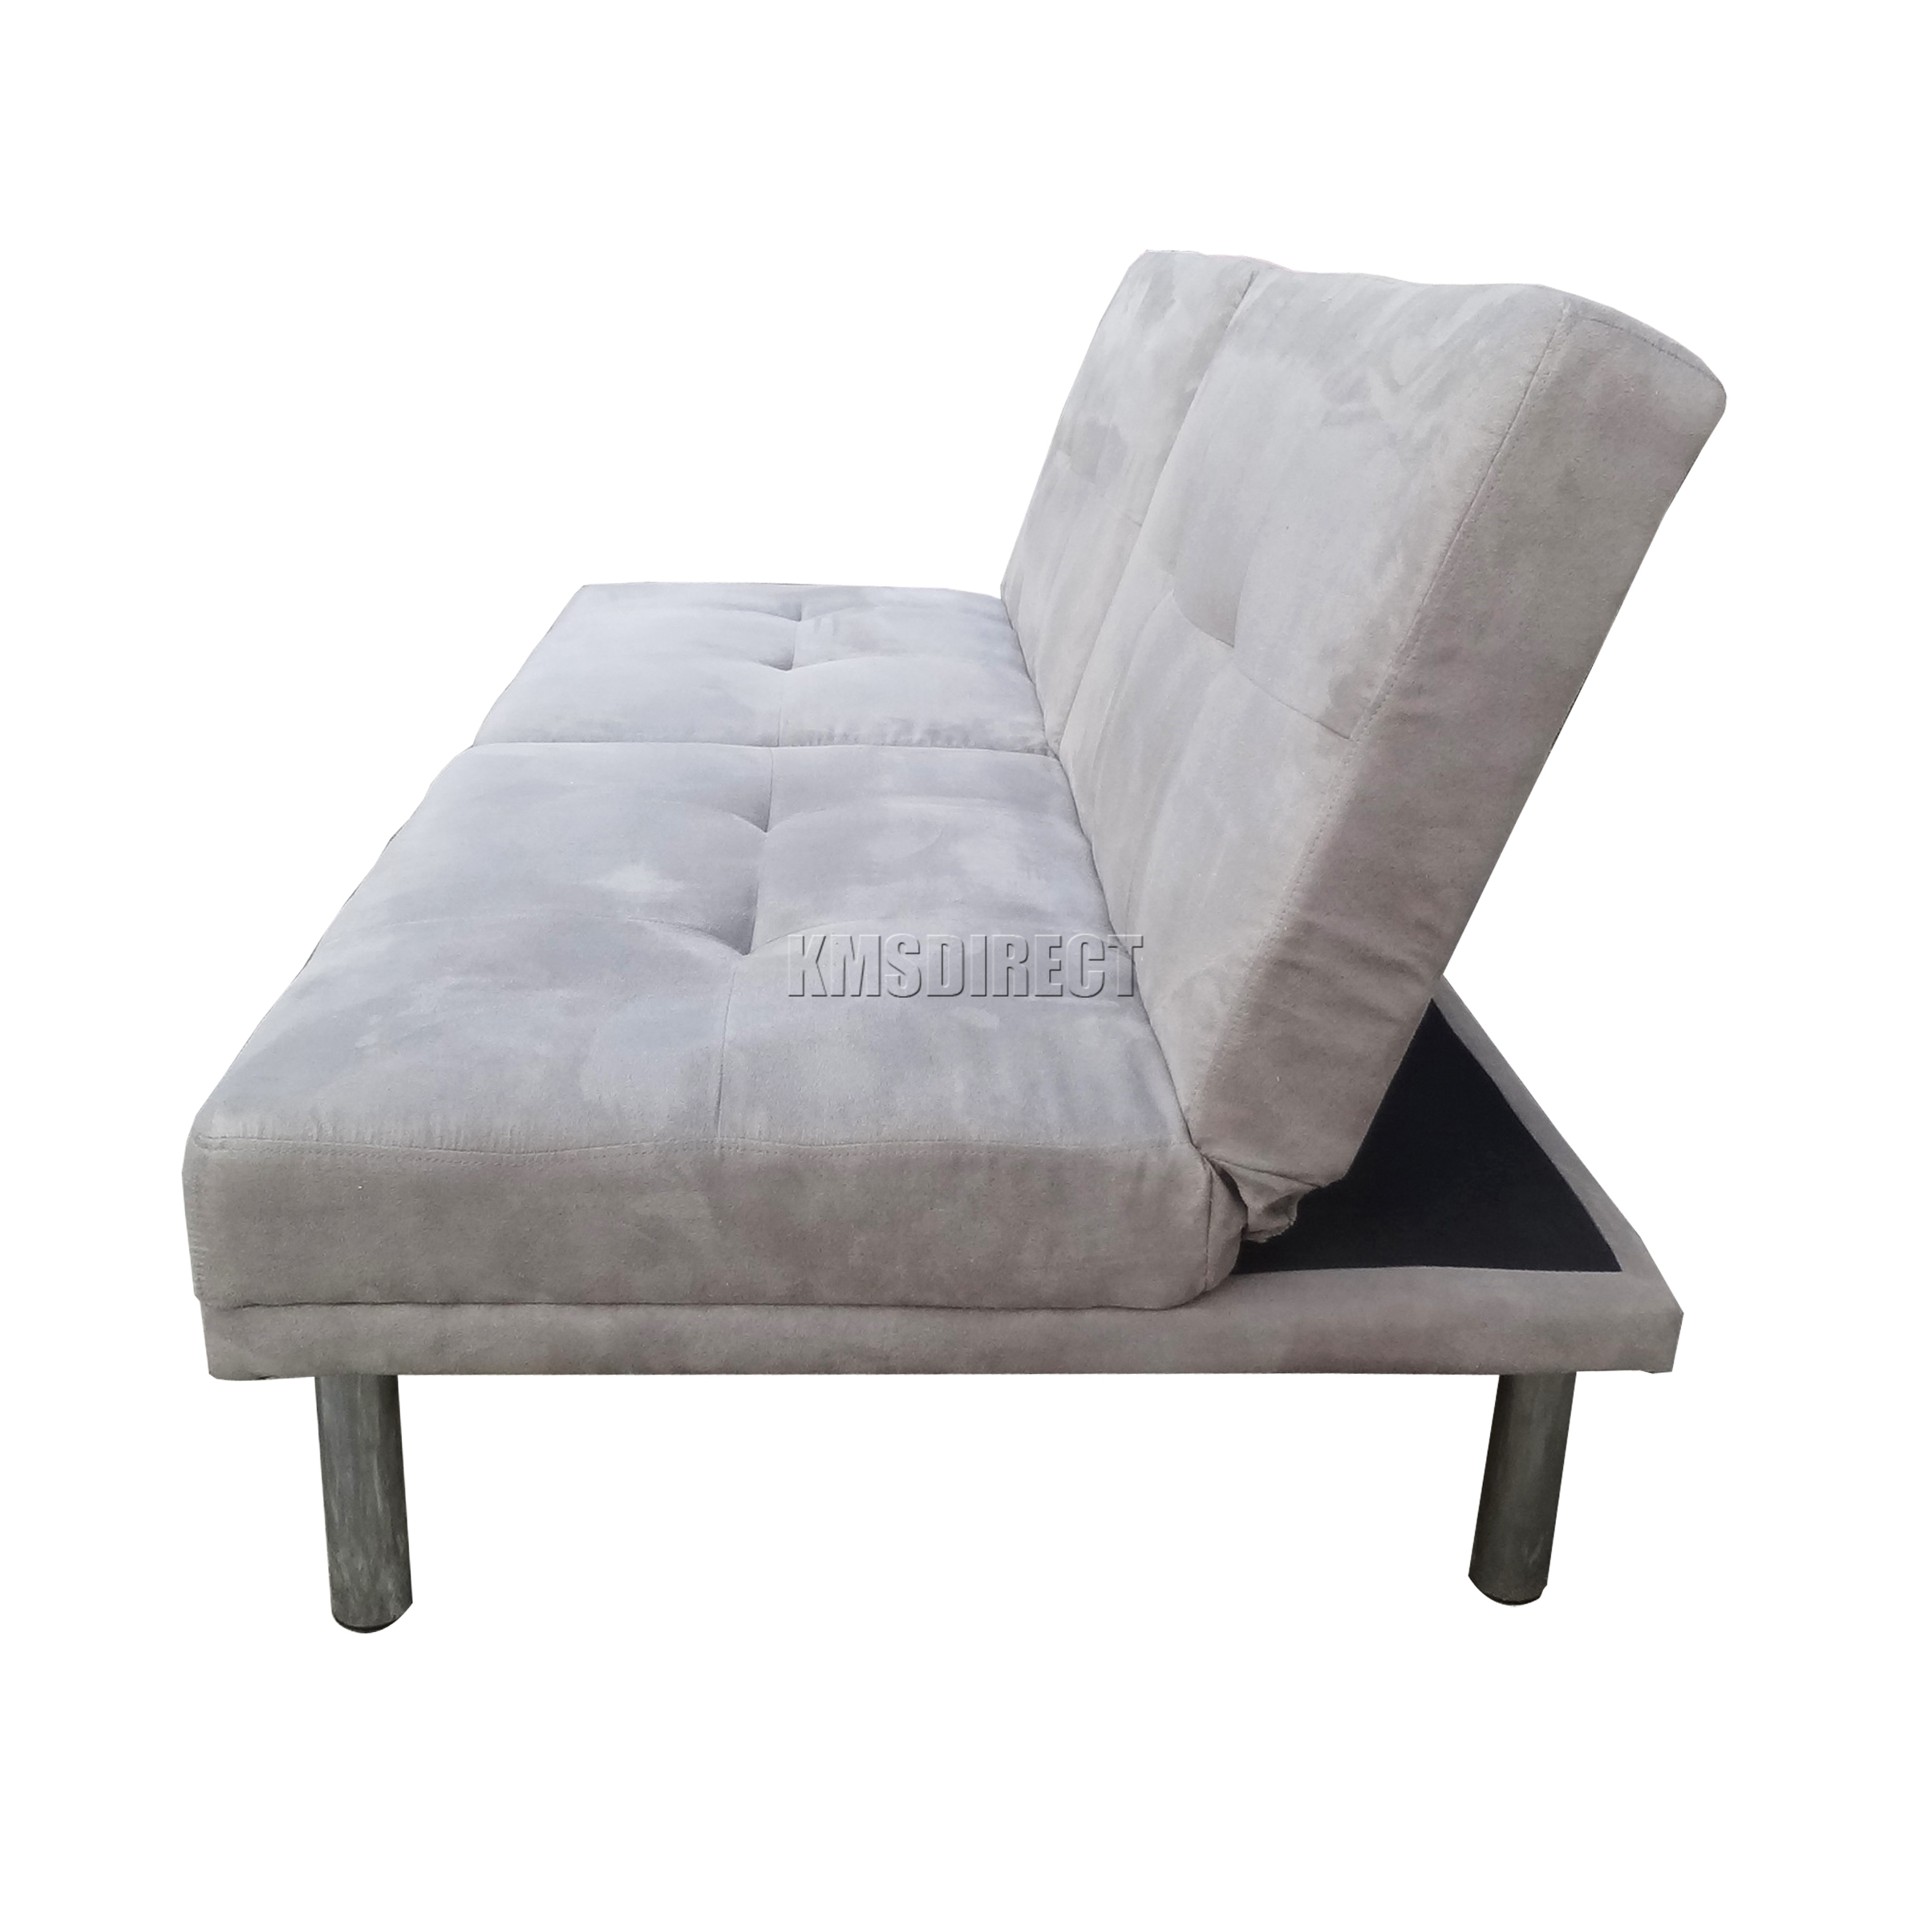 next day sofas customer reviews large u shaped sectional sofa foxhunter fabric faux suede bed recliner 2 seater